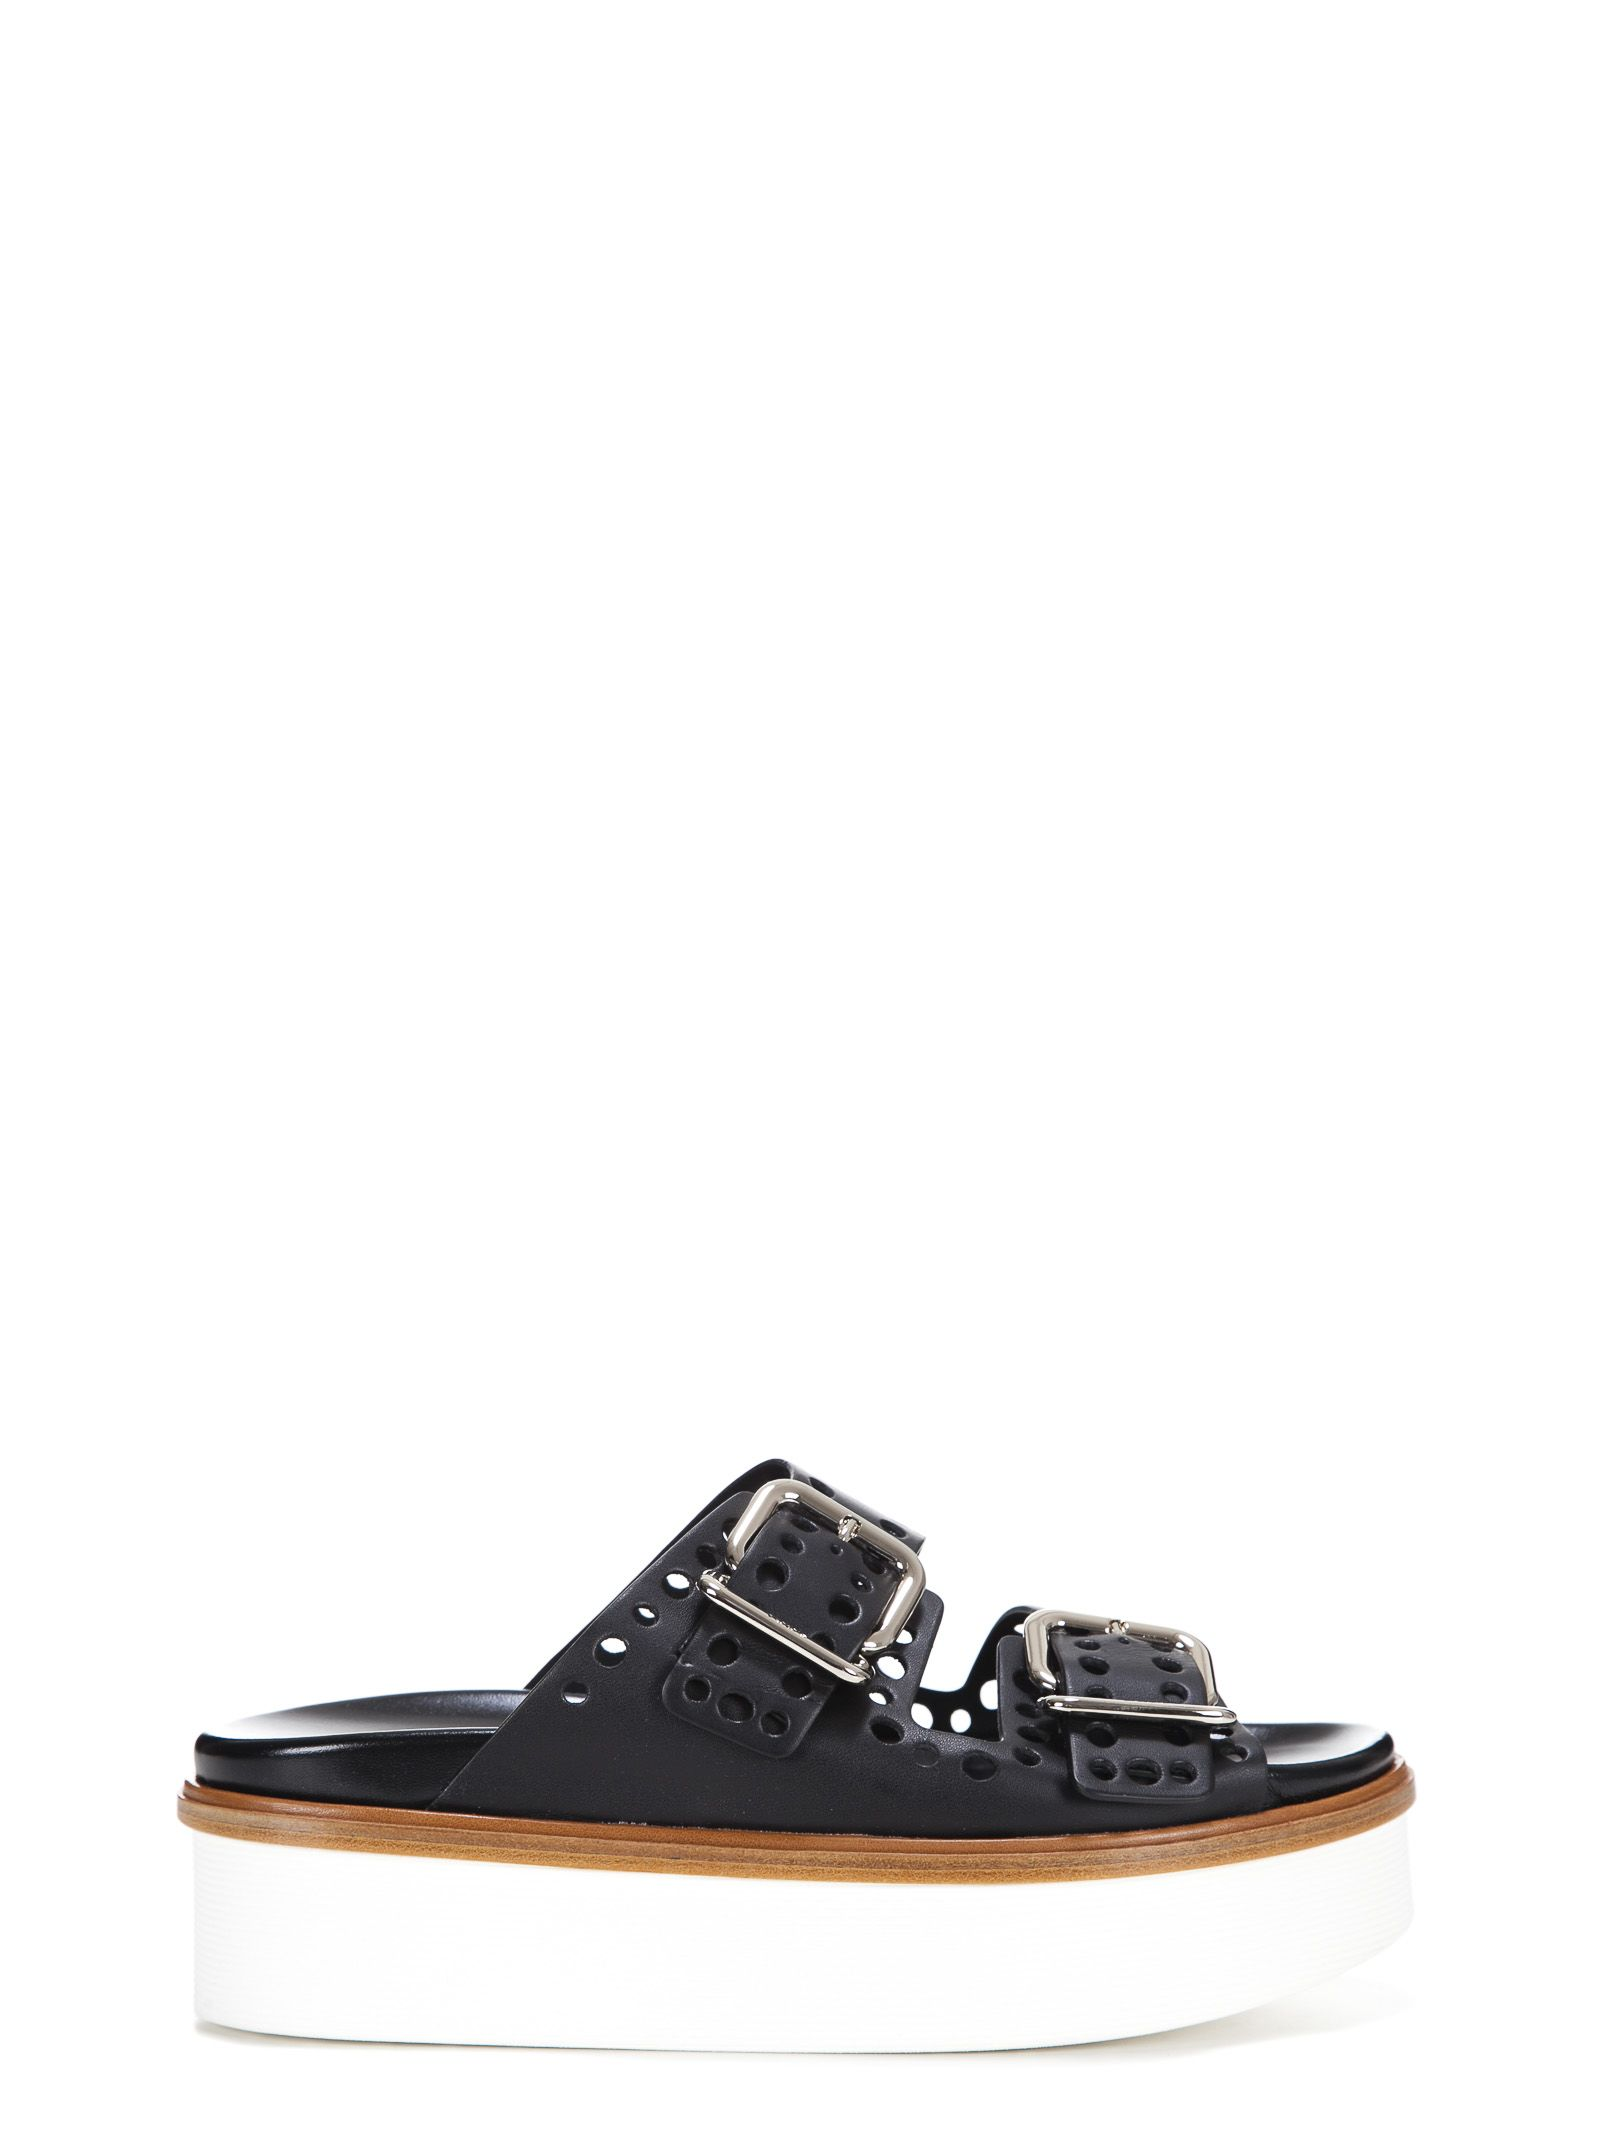 punched hole double strap platform sandals - Brown Tod's g3Fo5kQxV